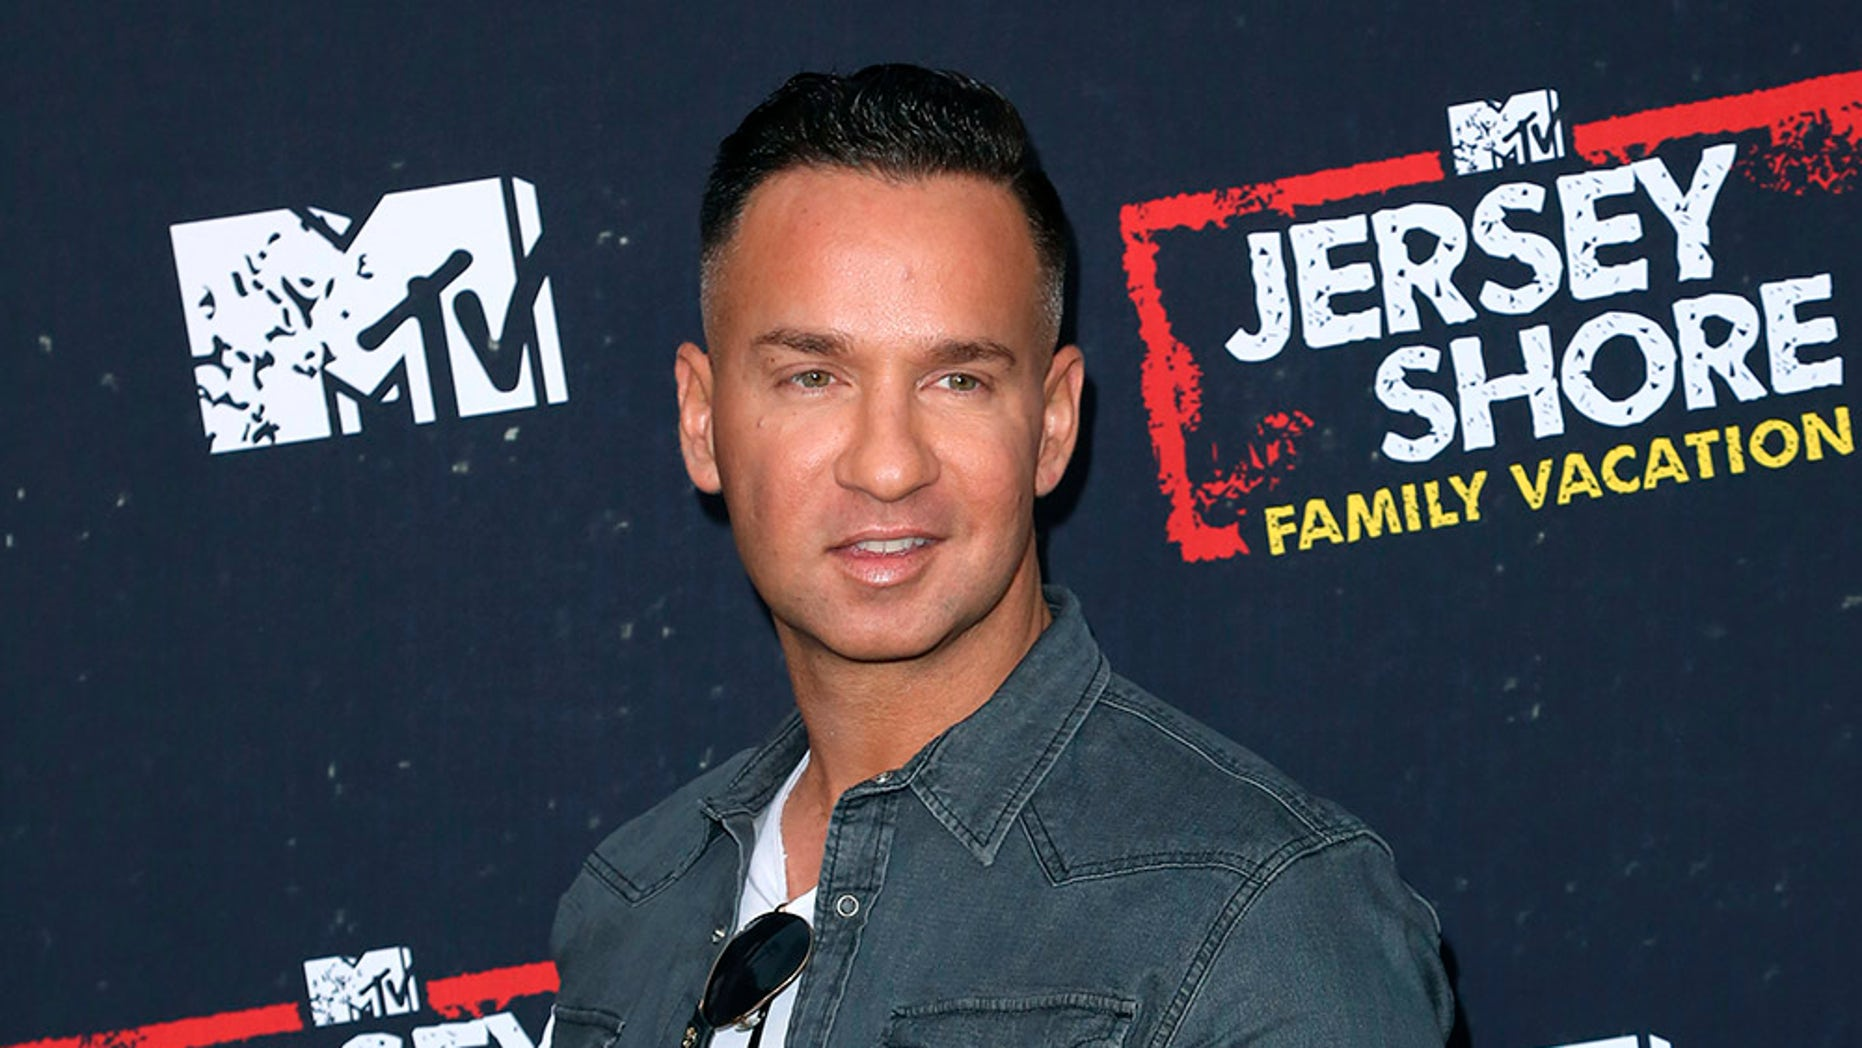 'Jersey Shore's' Mike 'The Situation' Sorrentino Gets 8 Months For Tax Evasion